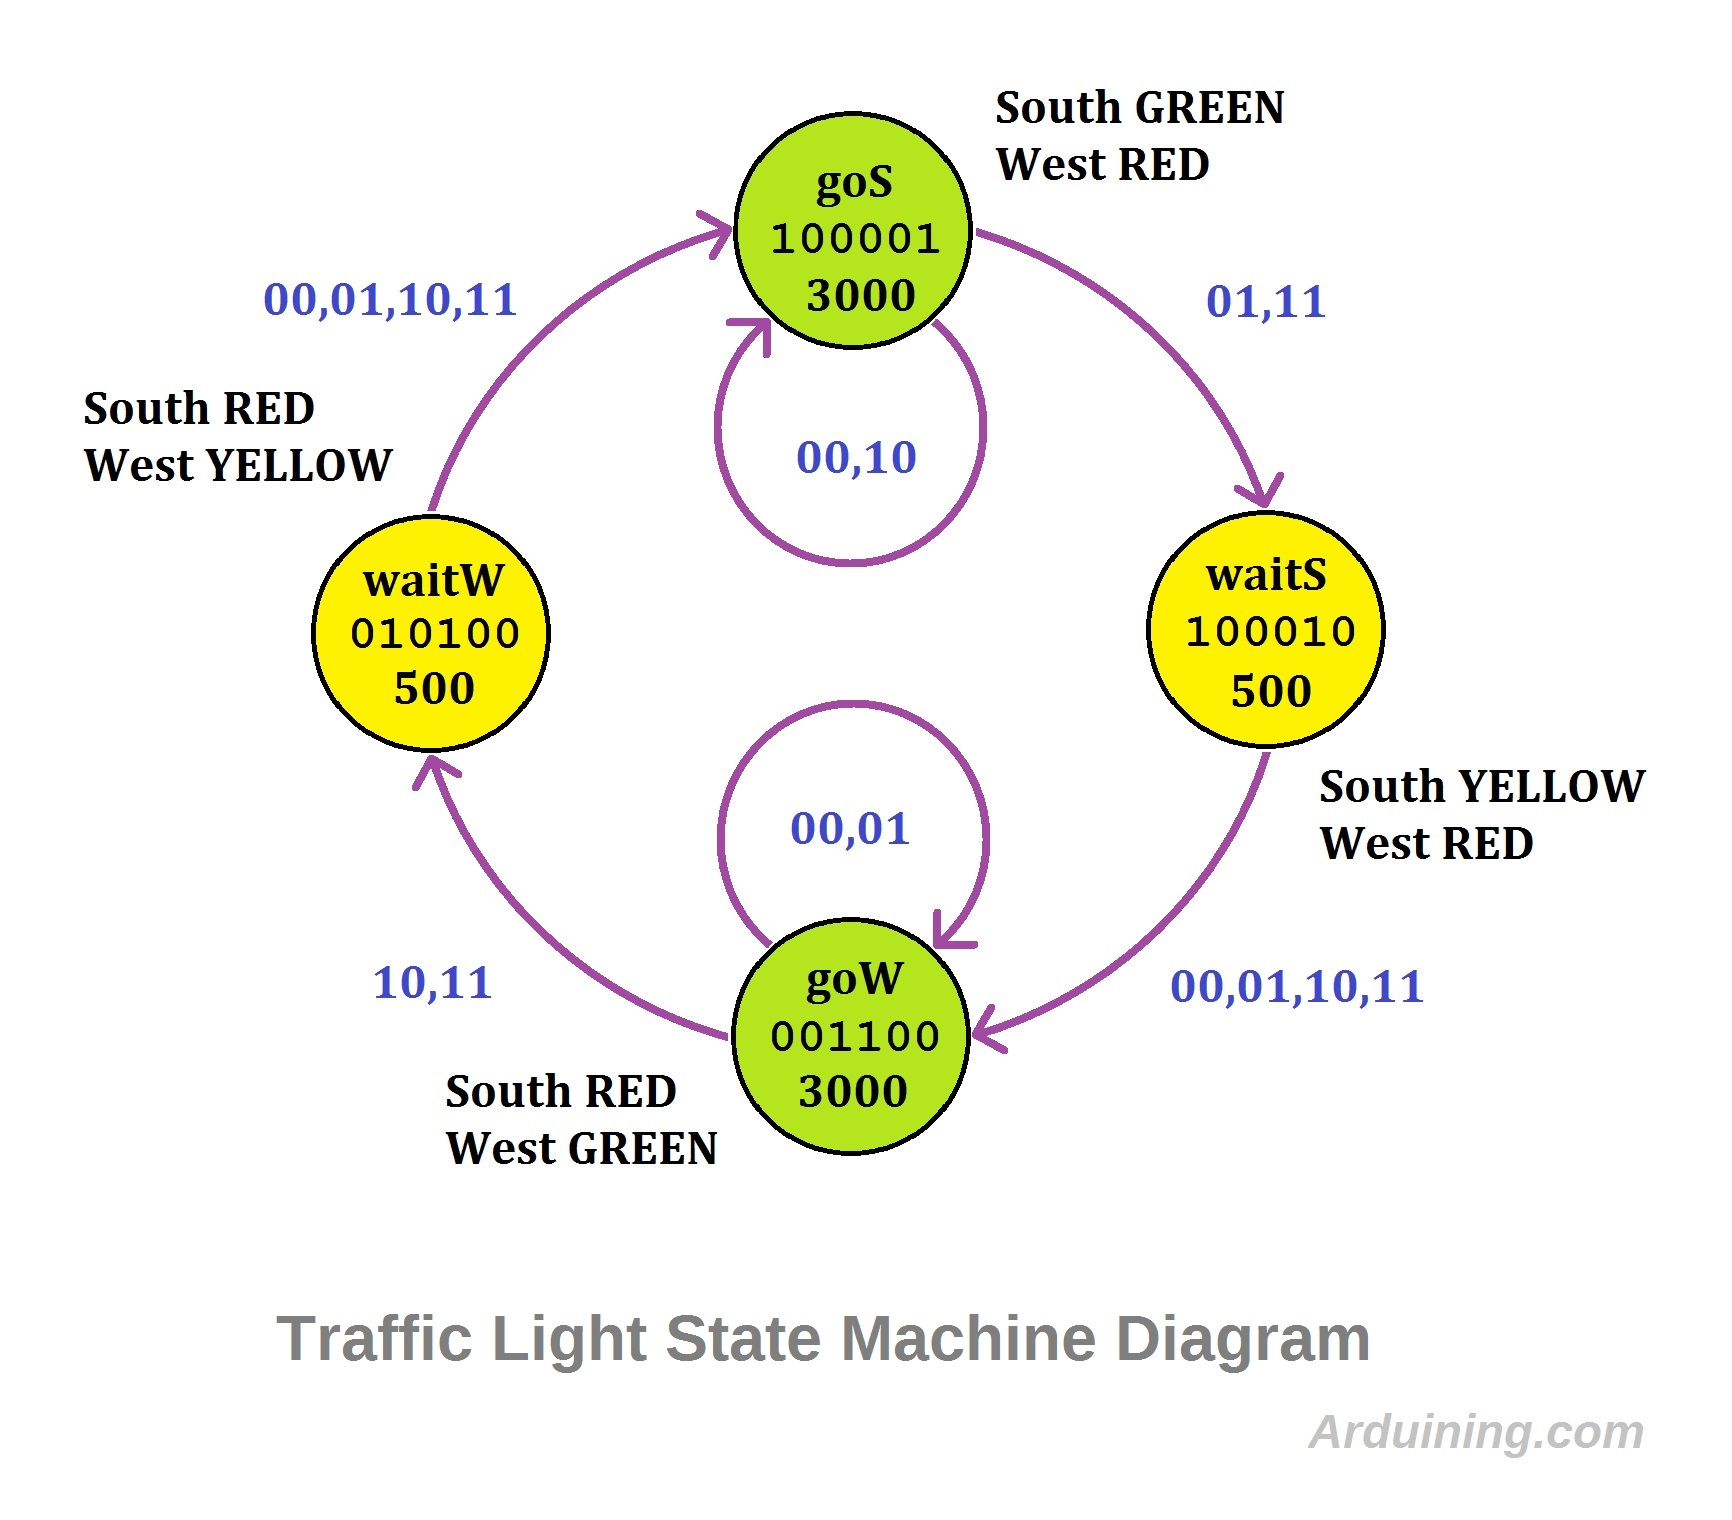 hight resolution of traffic states diagram2 traffic light finite state machine with arduino arduining traffic states diagram2